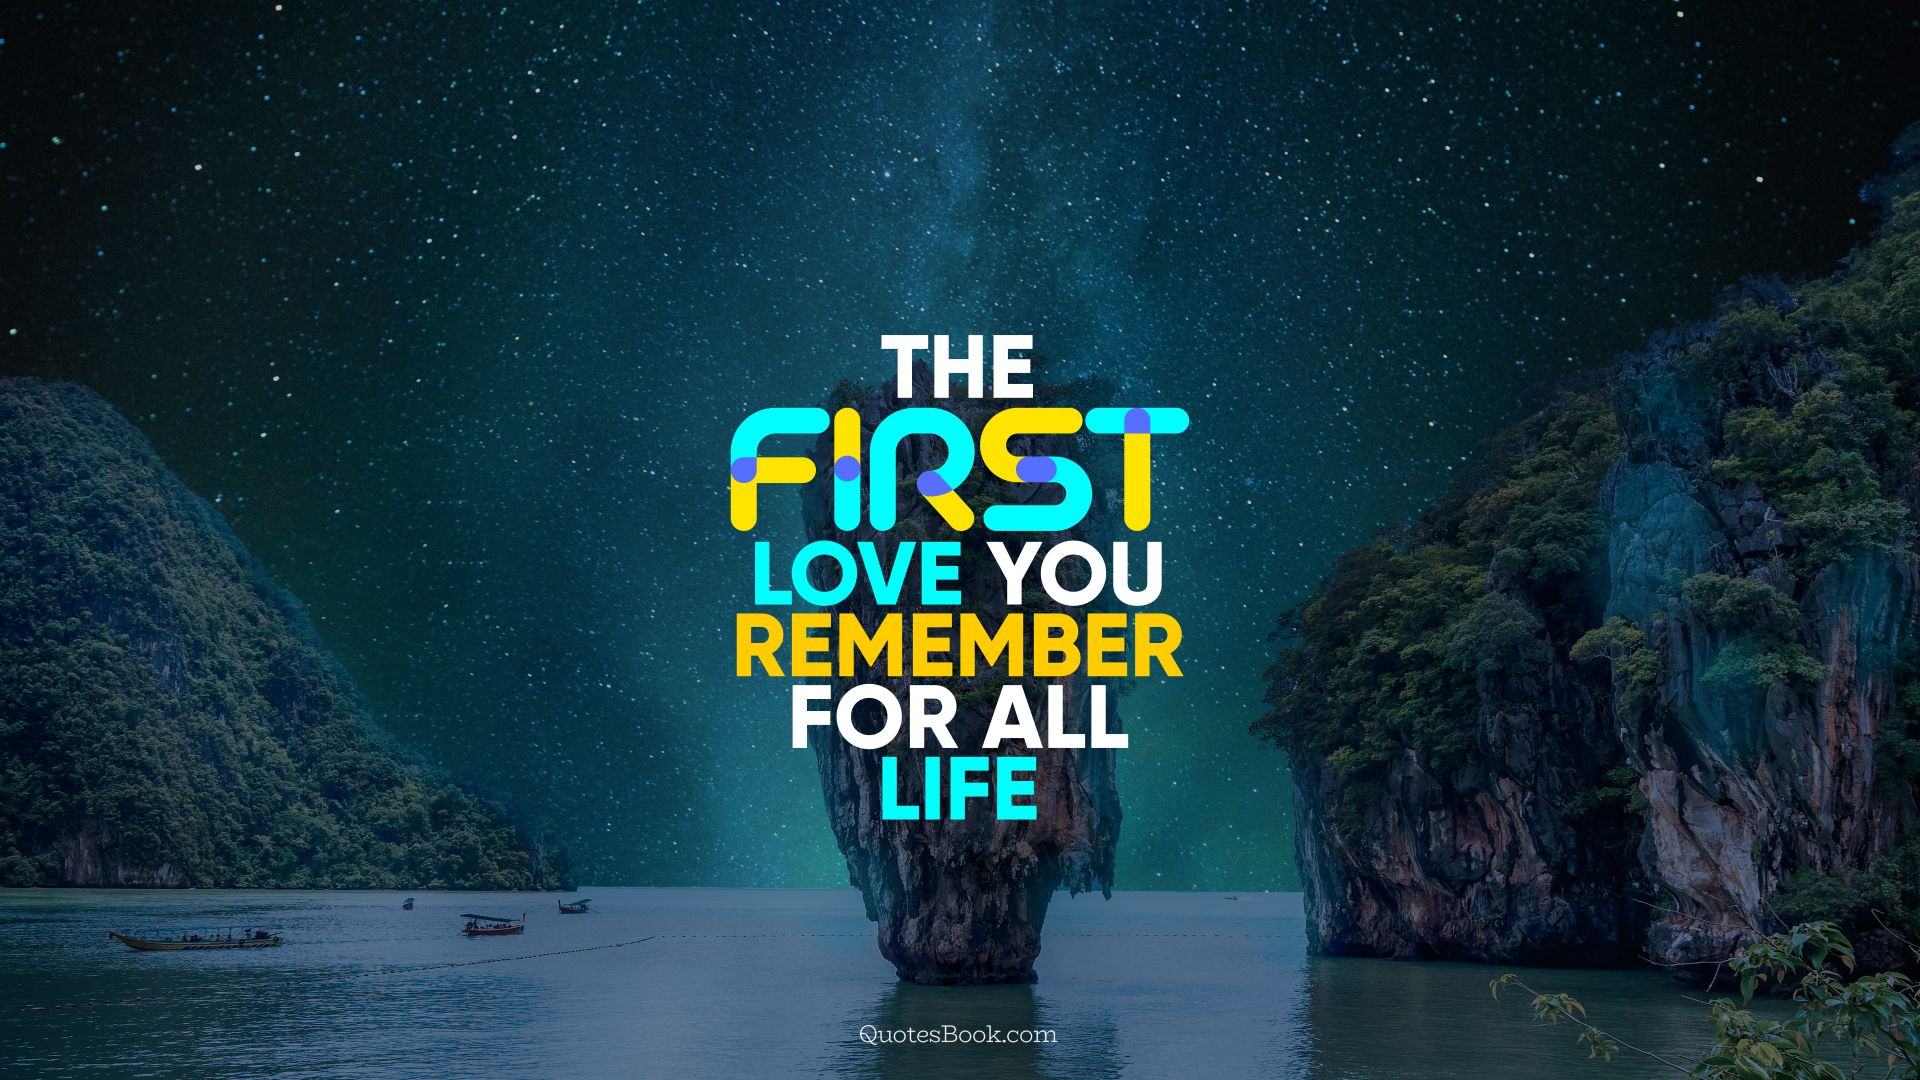 The first love you remember for all life. - Quote by QuotesBook